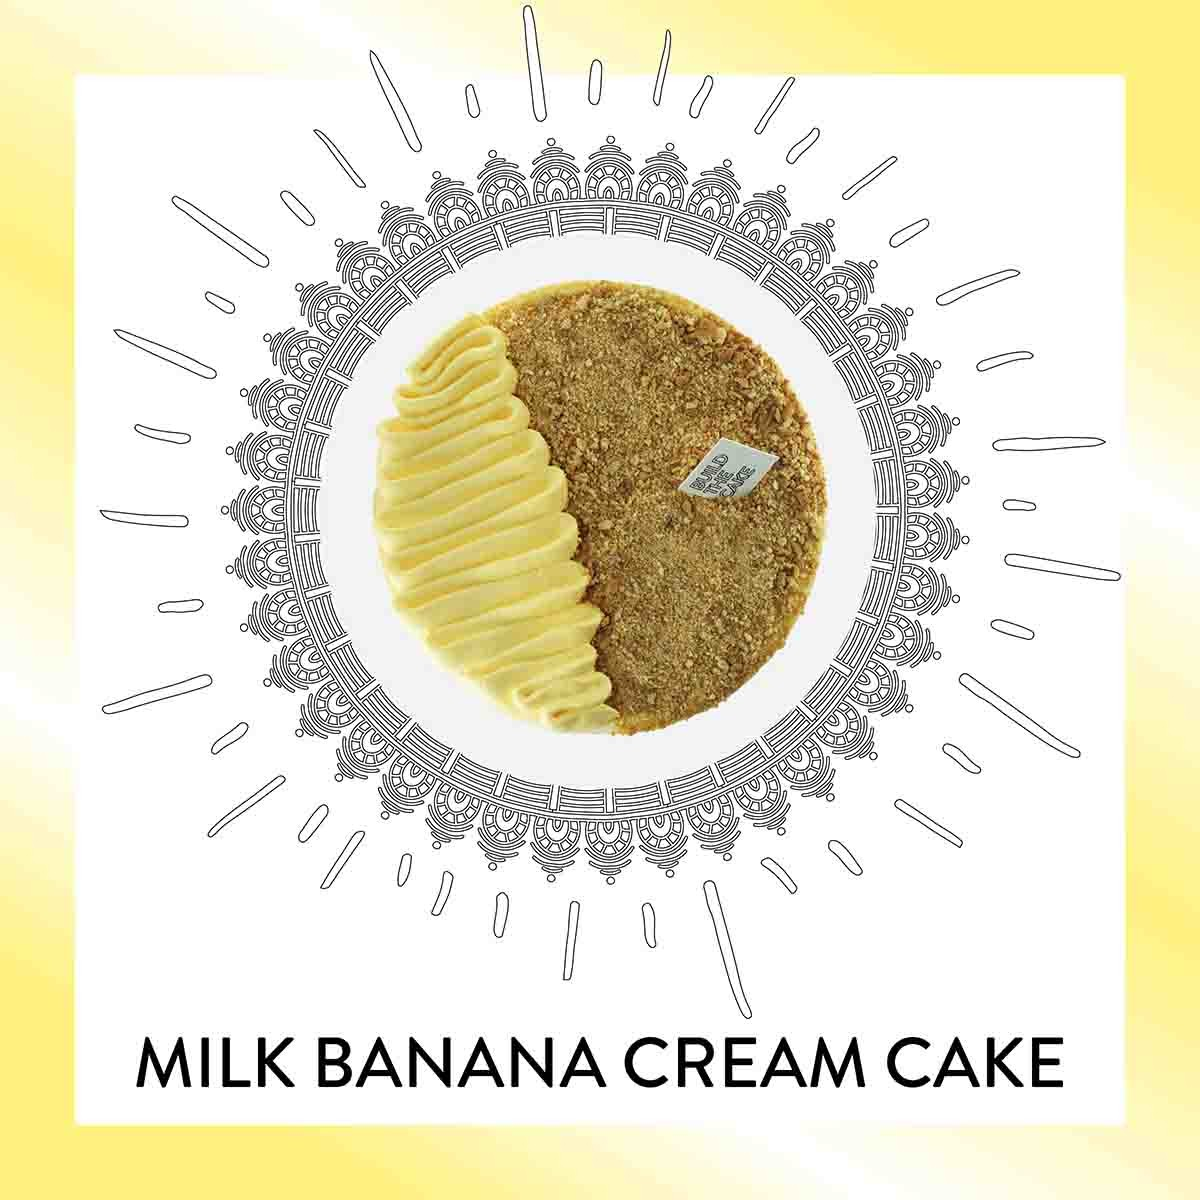 Milk Banana Cream Cake